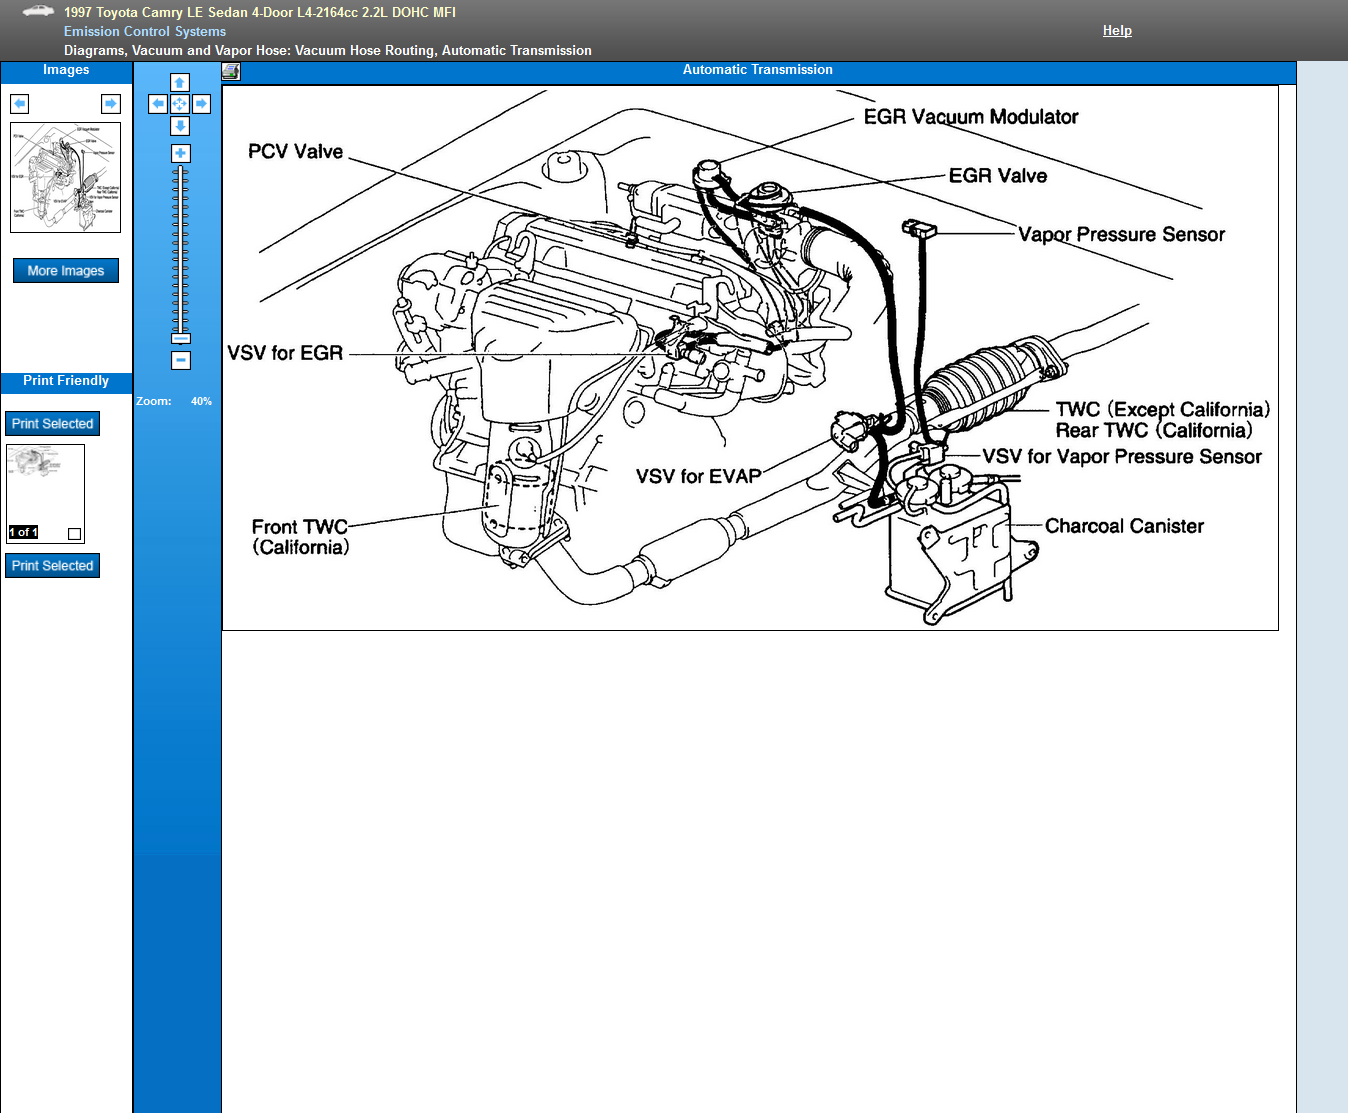 I am working on a 1997 Camry le 2.2 engine. Can you send me a schematic  showing how all the vacuum hoses connect toJustAnswer